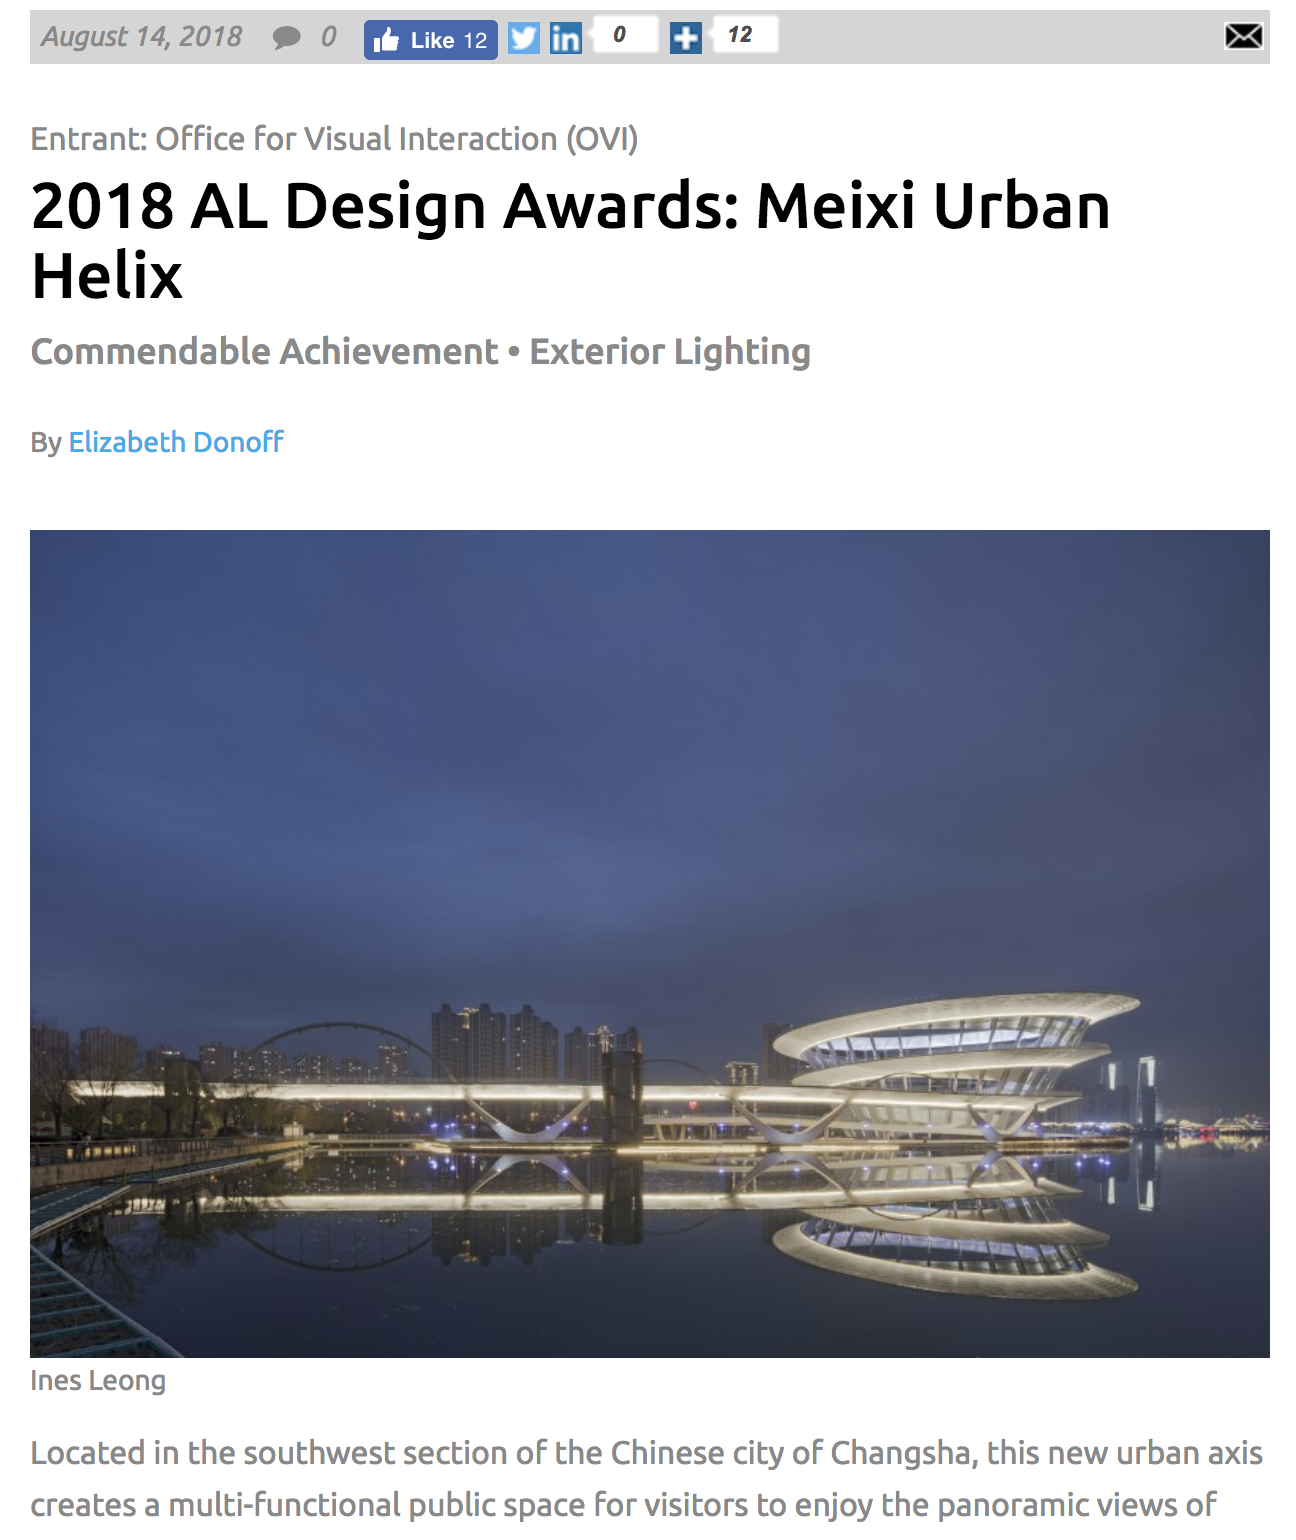 - It was such honor to travel to the other side of the globe to capture Meixi Urban Helix on the Lake of Meixi (Meixihu) in Changsha, China. Congratulations to our client OVI on winning the AL Lighting Award 2018.read more